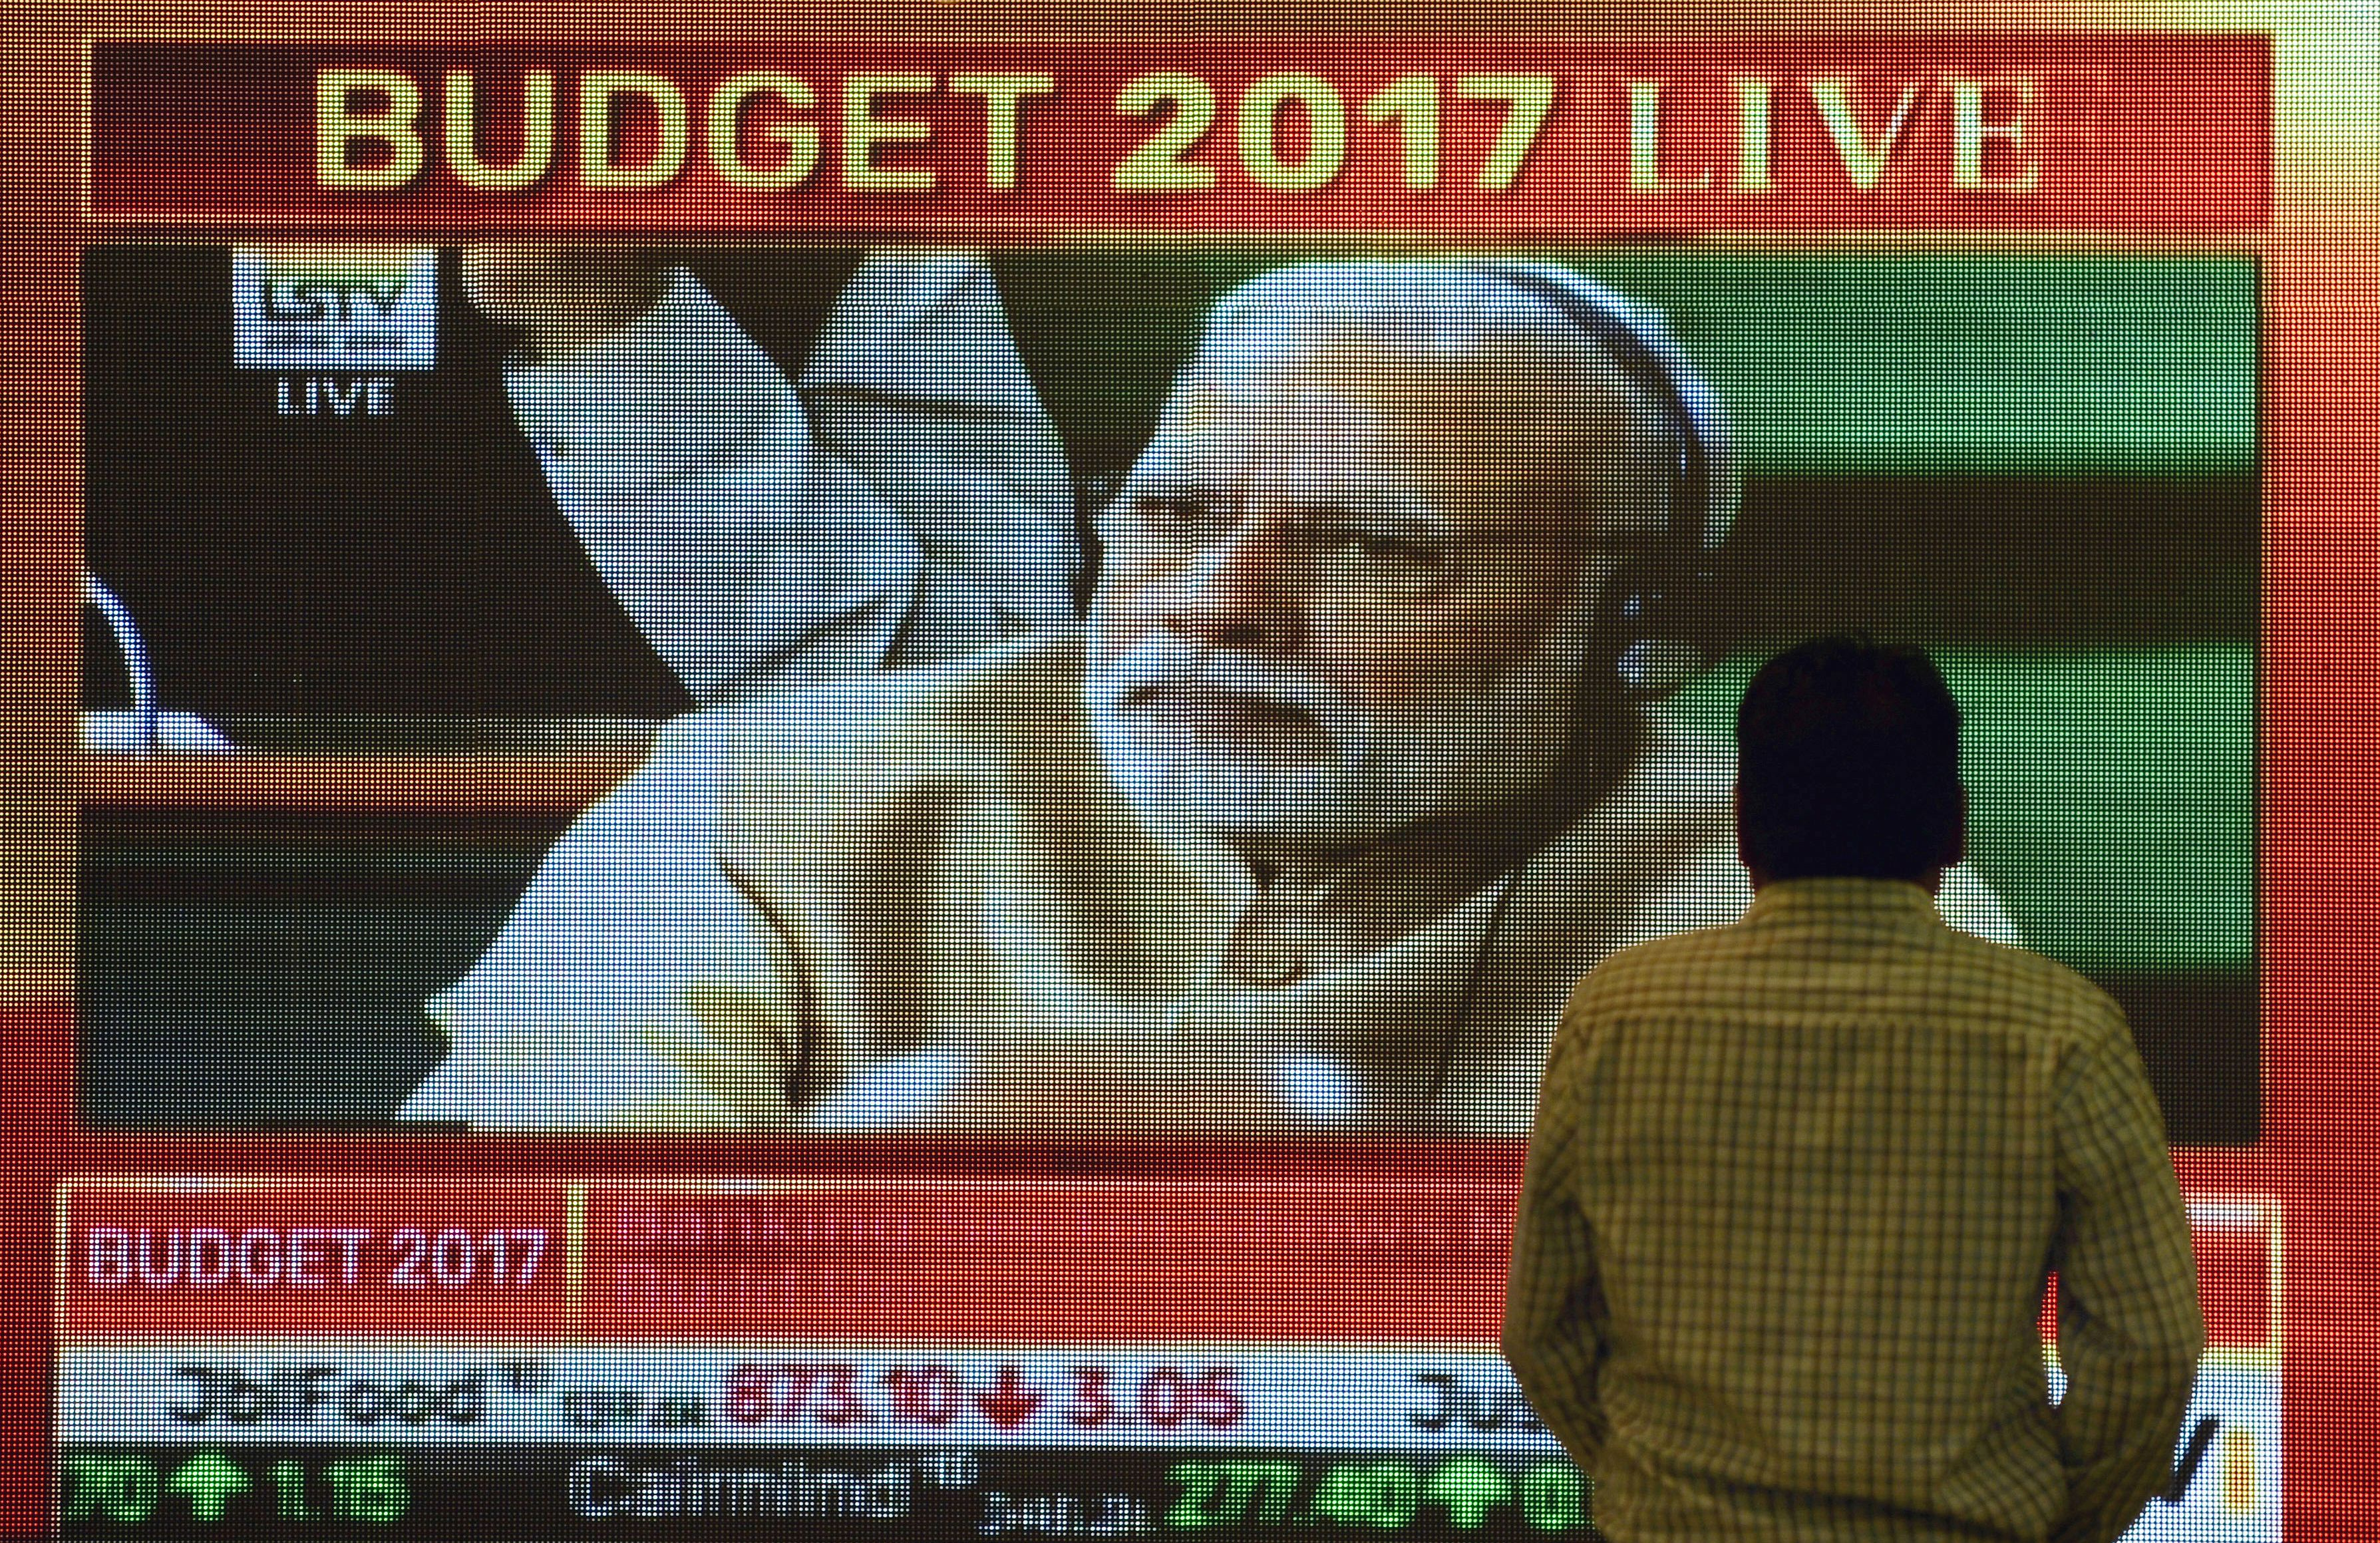 A bystander at the Bombay Stock Exchange walks past a screen showing Indian Prime Minister Narendra Modi listening to Finance Minister Arun Jaitley's delivery of the budget speech at Parliament on Feb. 1, 2017